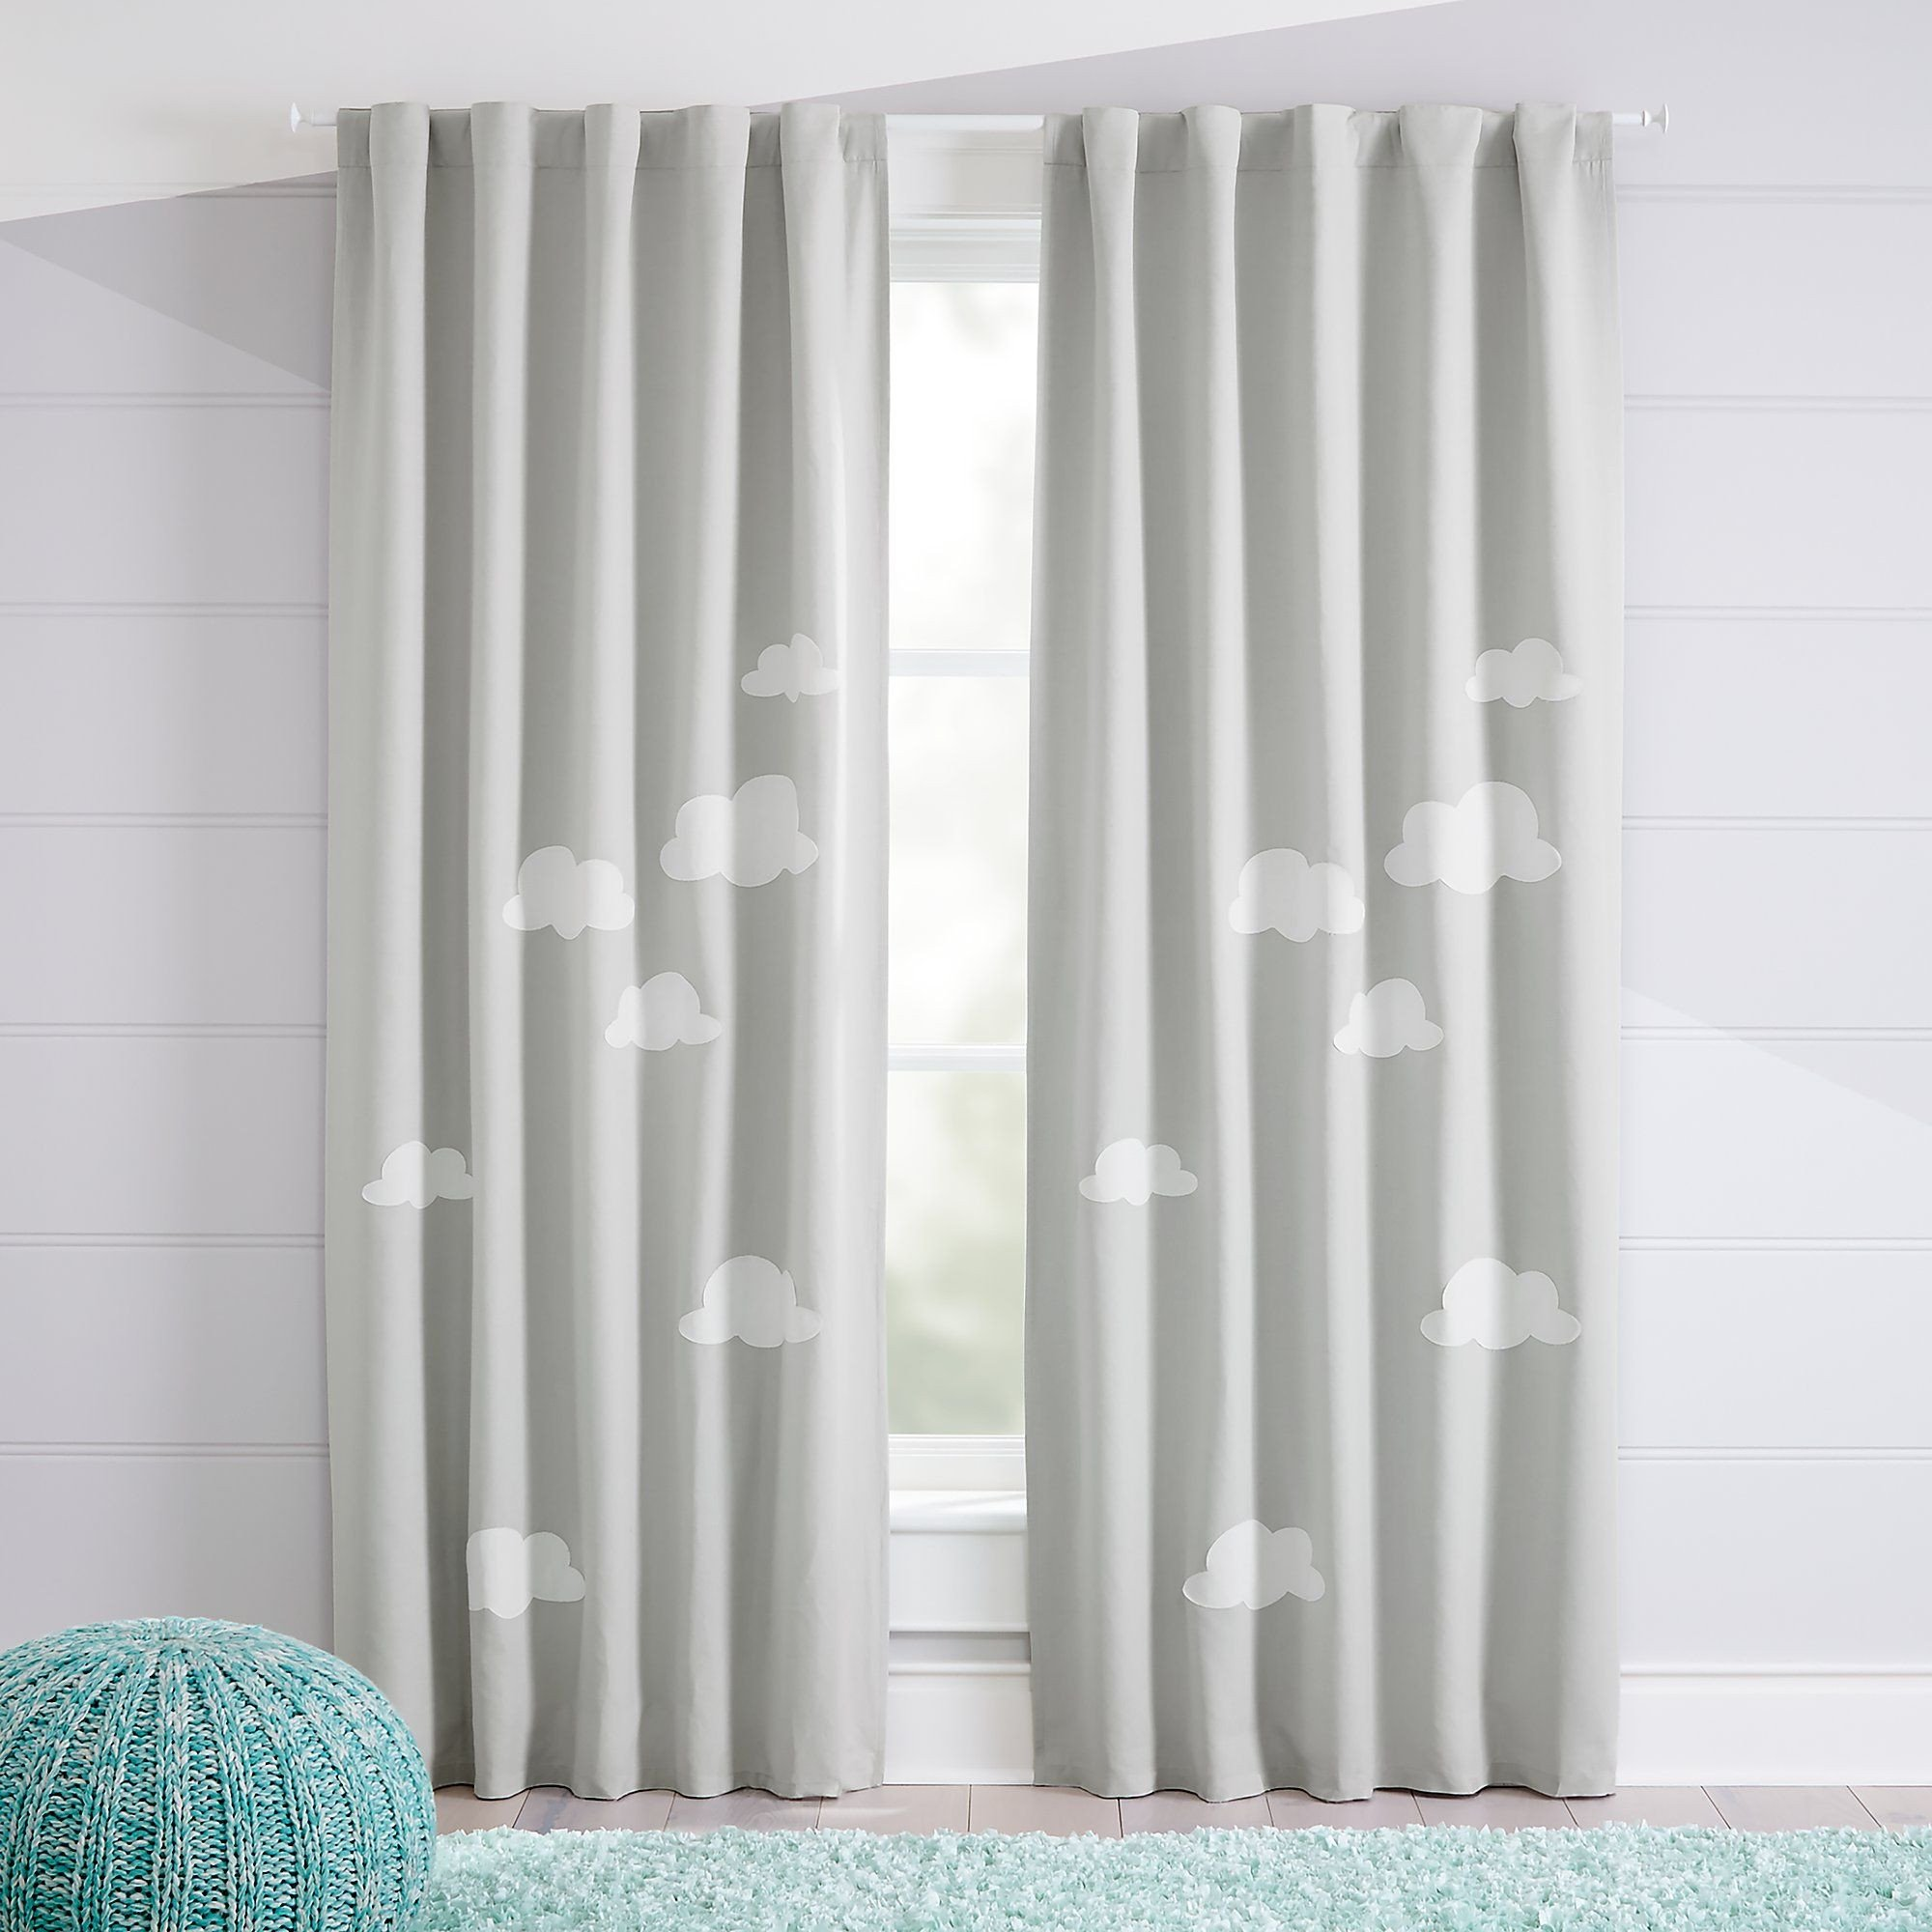 "Blackout Drapes for Bedroom Inspirational Cloud 63"" Blackout Curtain"